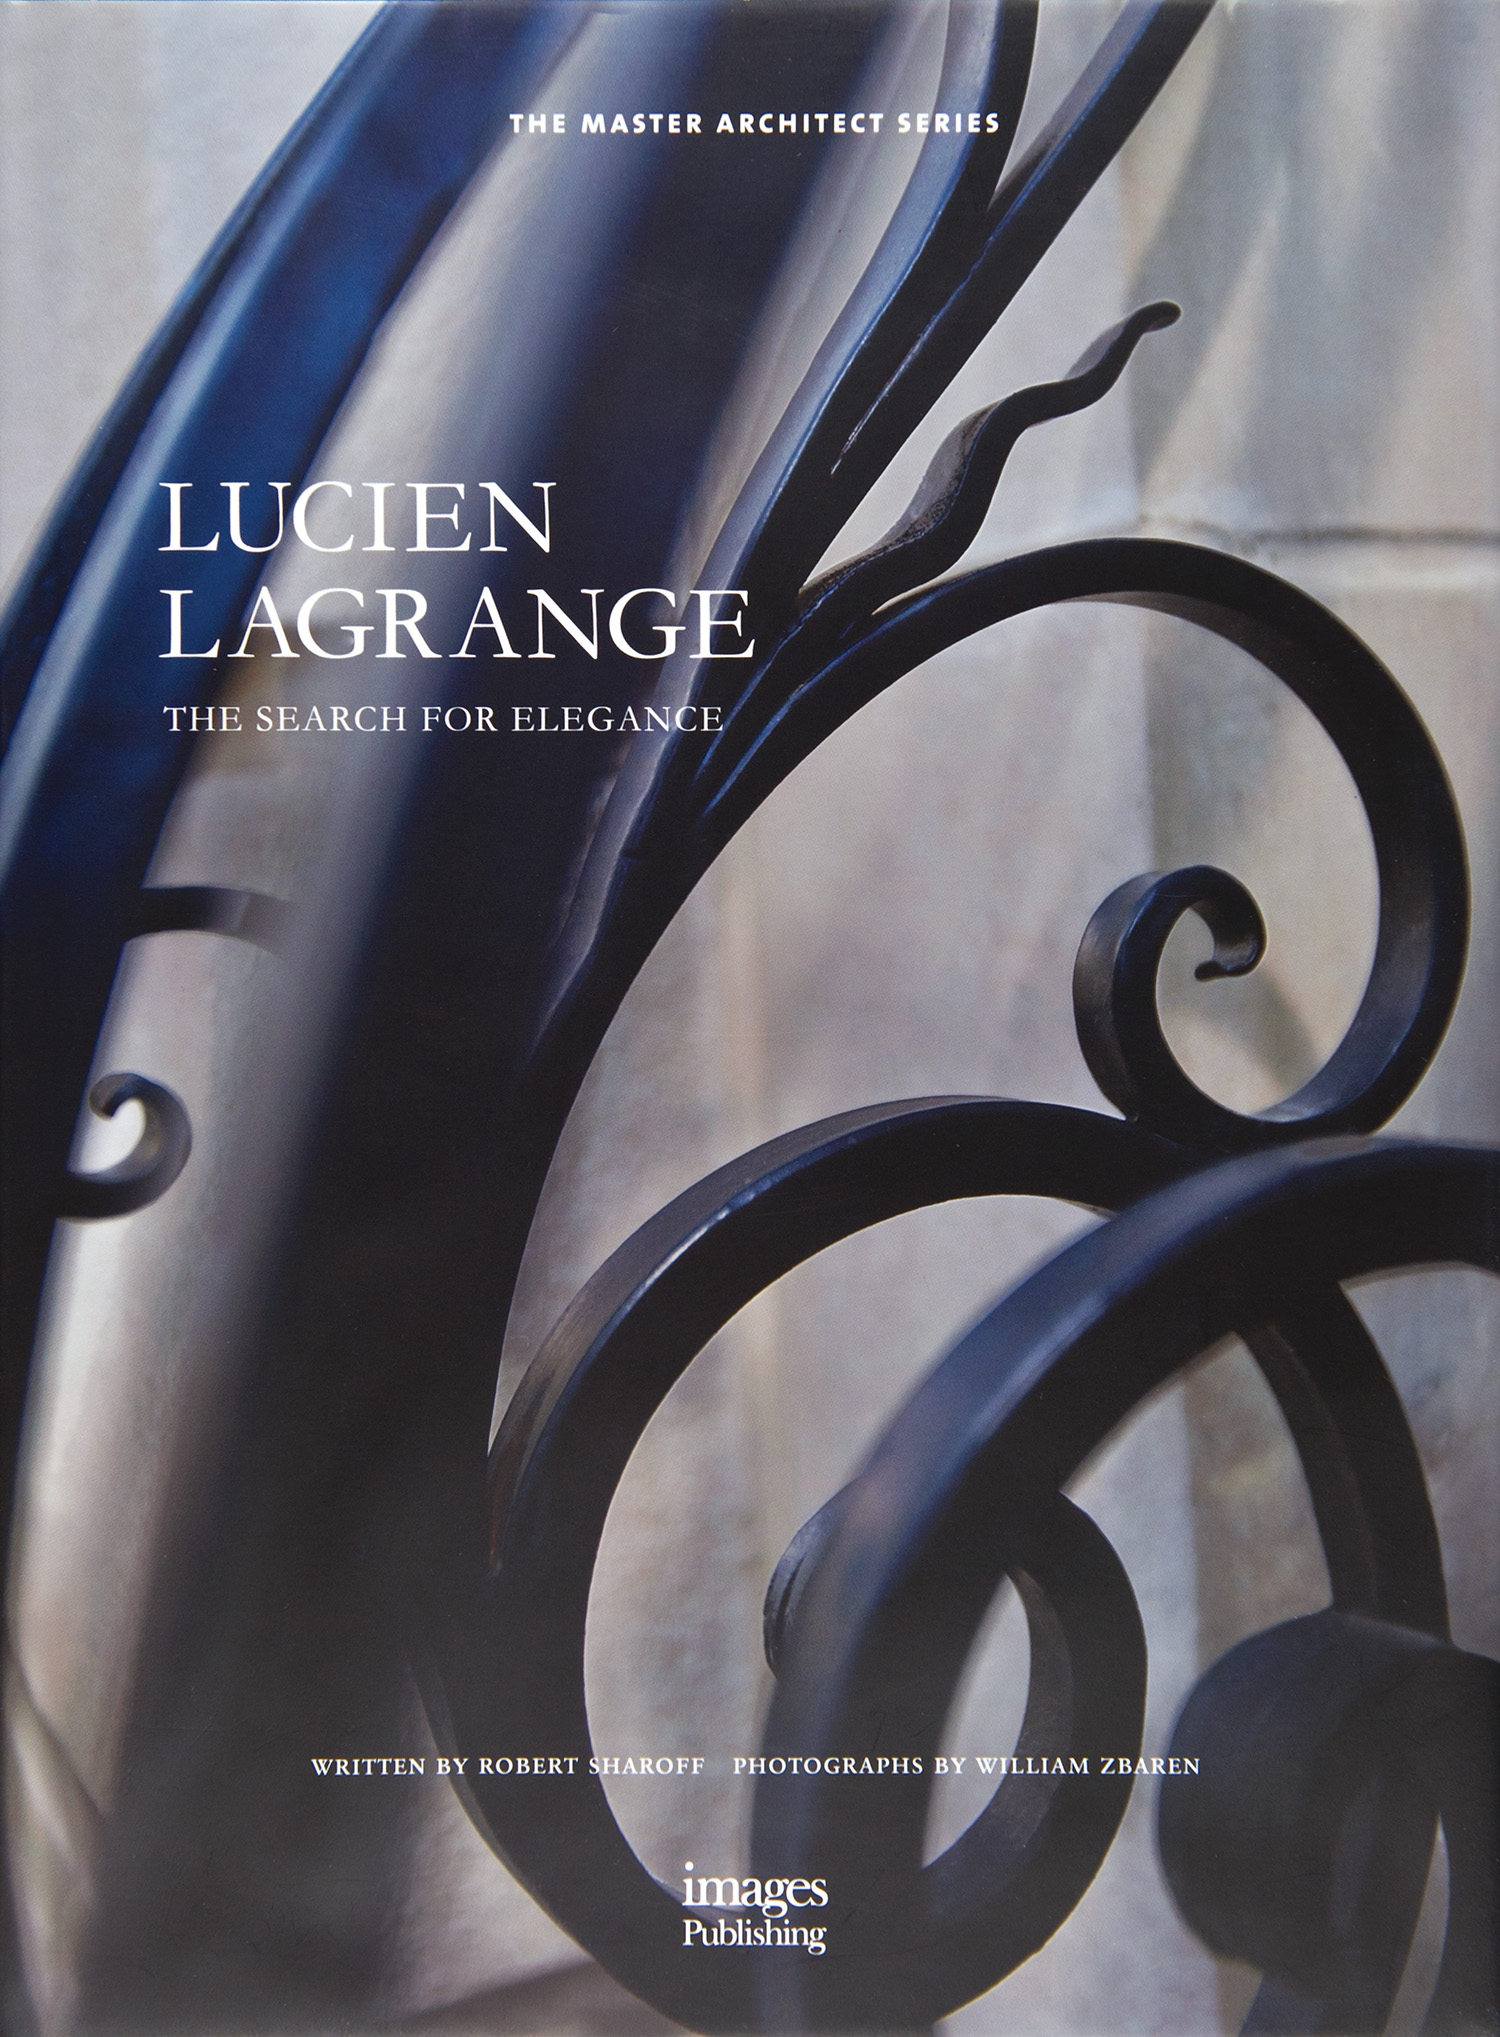 """Lucien Lagrange: The Search for Elegance"" / Photographs by Bill Zbaren / Text by Robert Sharoff / Published by the Images Publishing Group"